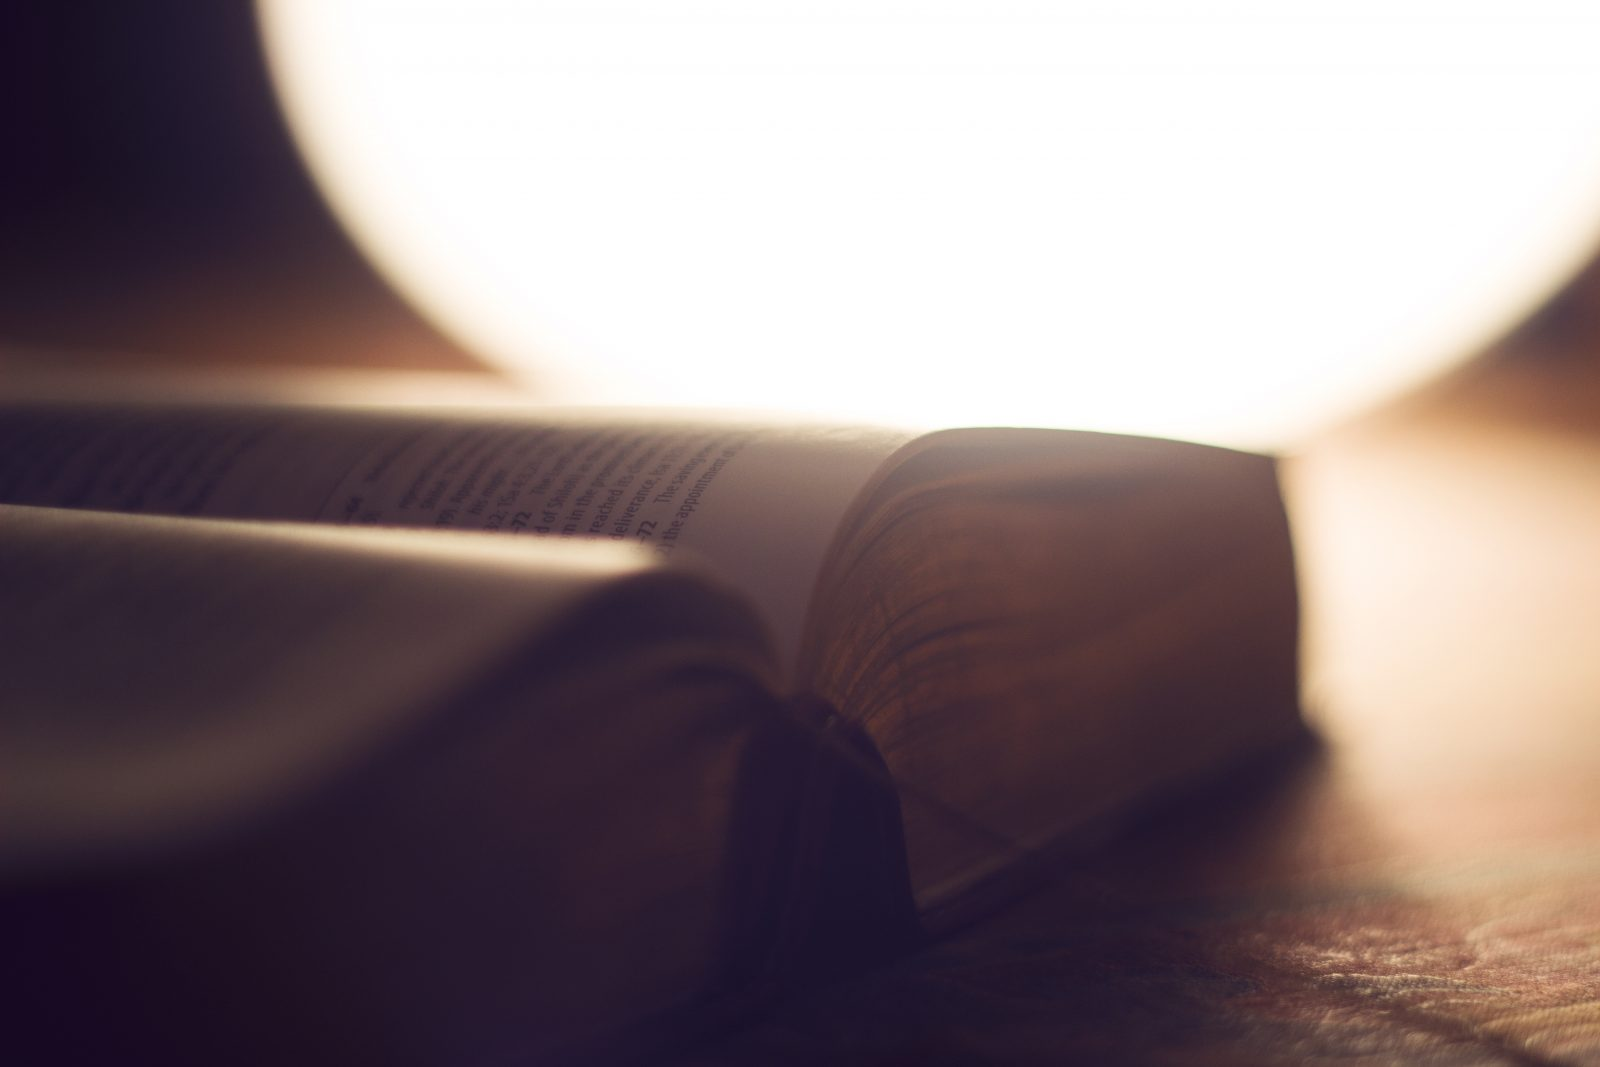 A close-up of an open book in front of a warm light